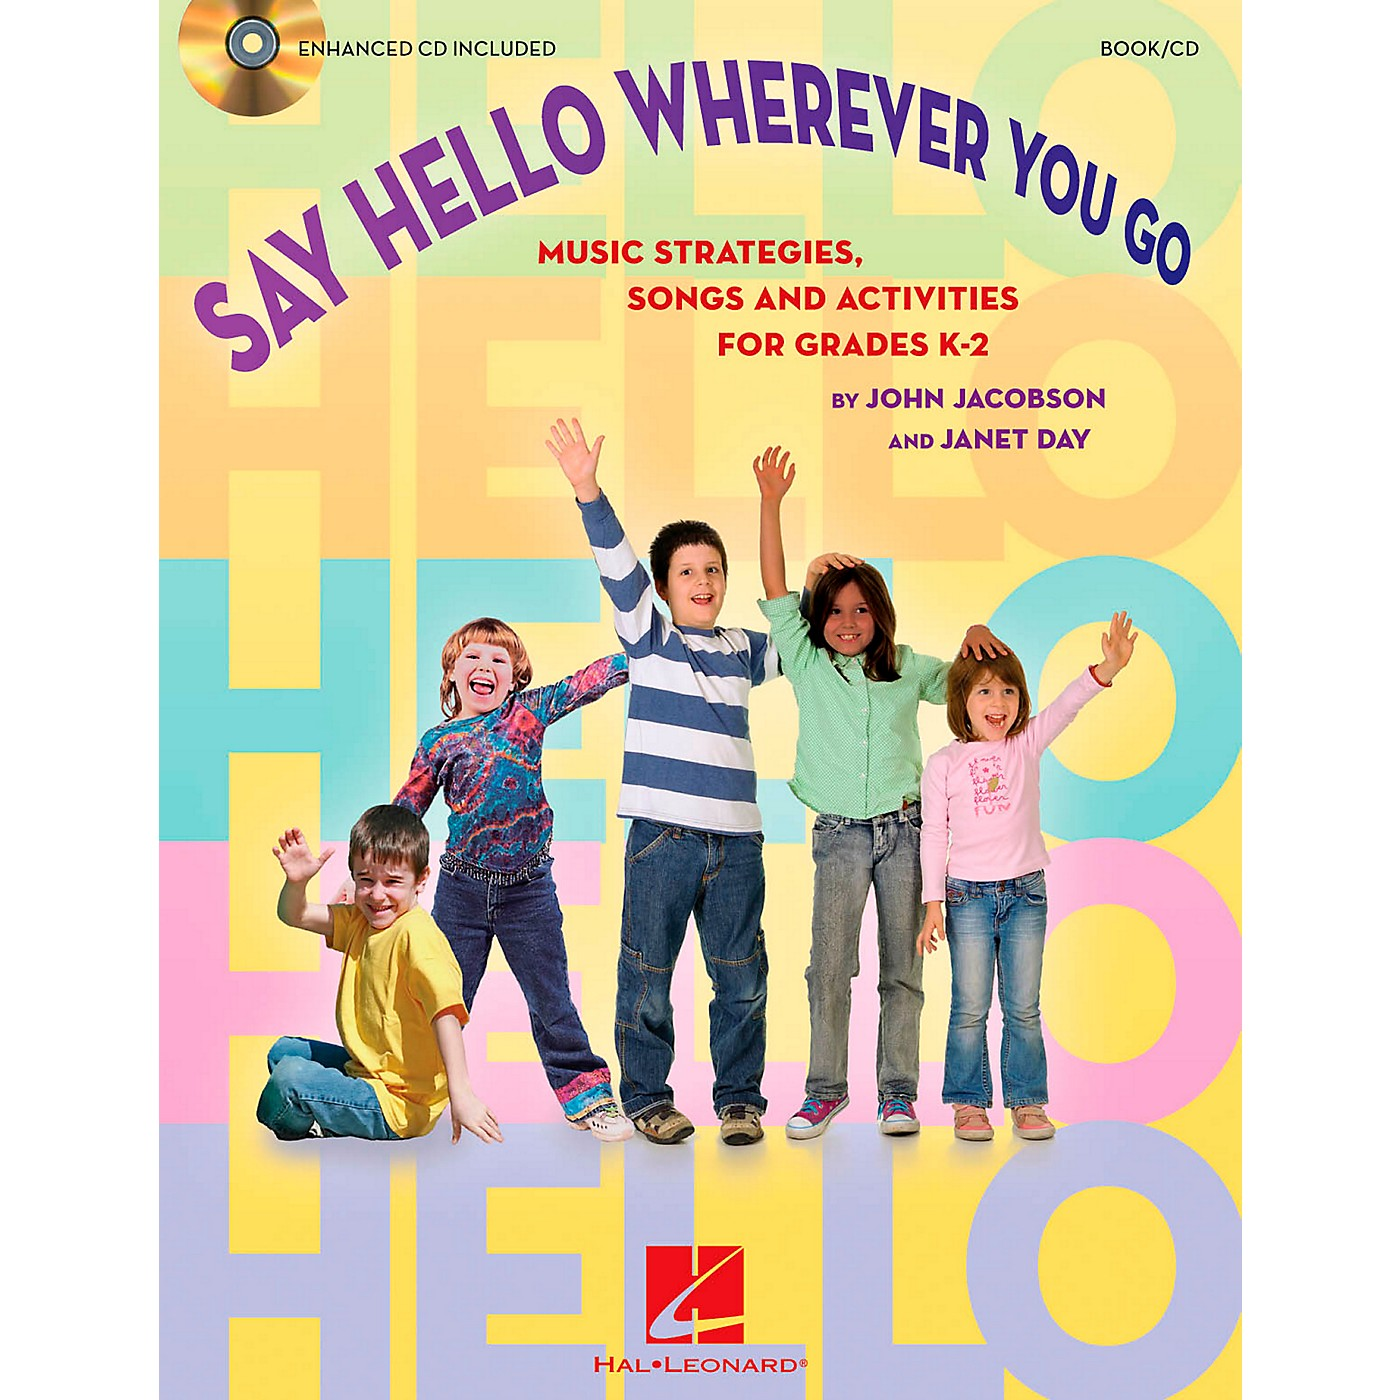 Hal Leonard Say Hello Wherever You Go - Music Strategies, Songs and Activities for Grades K-2 Book/CD thumbnail